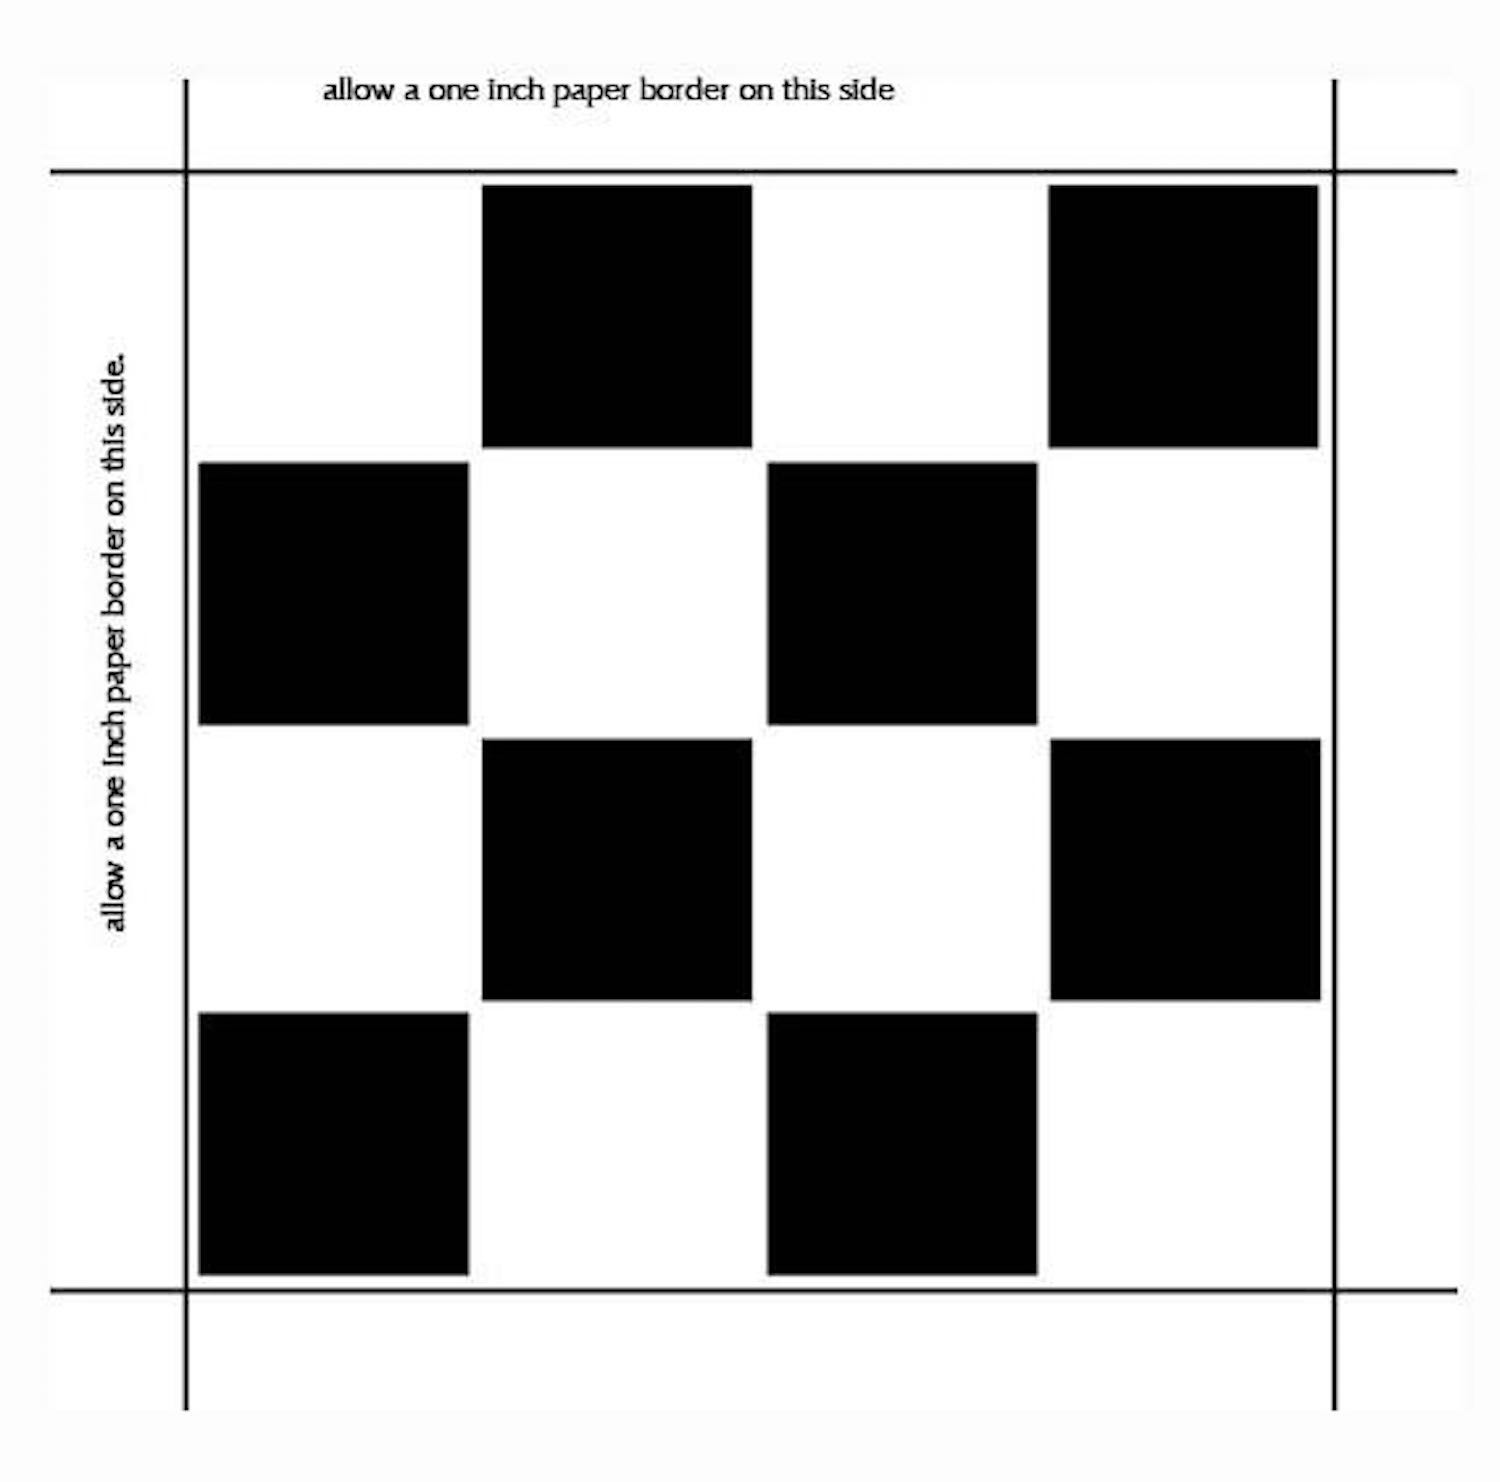 step 1 - Print out 4 copies of the checkerboard template on card stock. The template represents one quarter of the finished board.